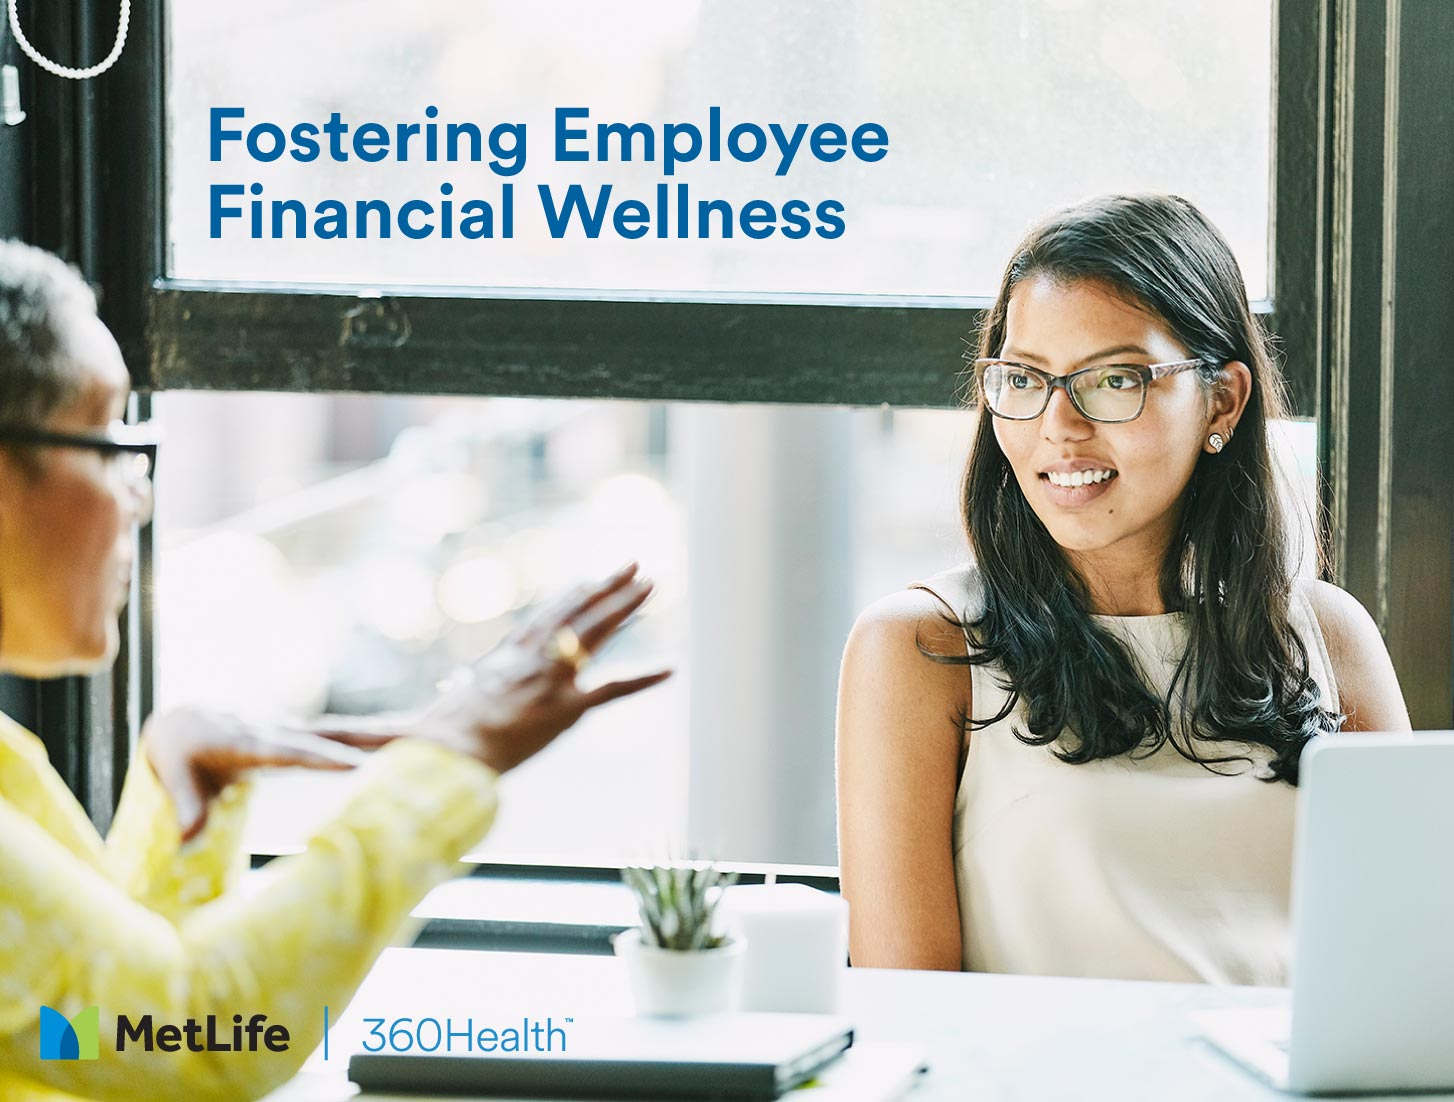 Fostering Employee Financial Wellness